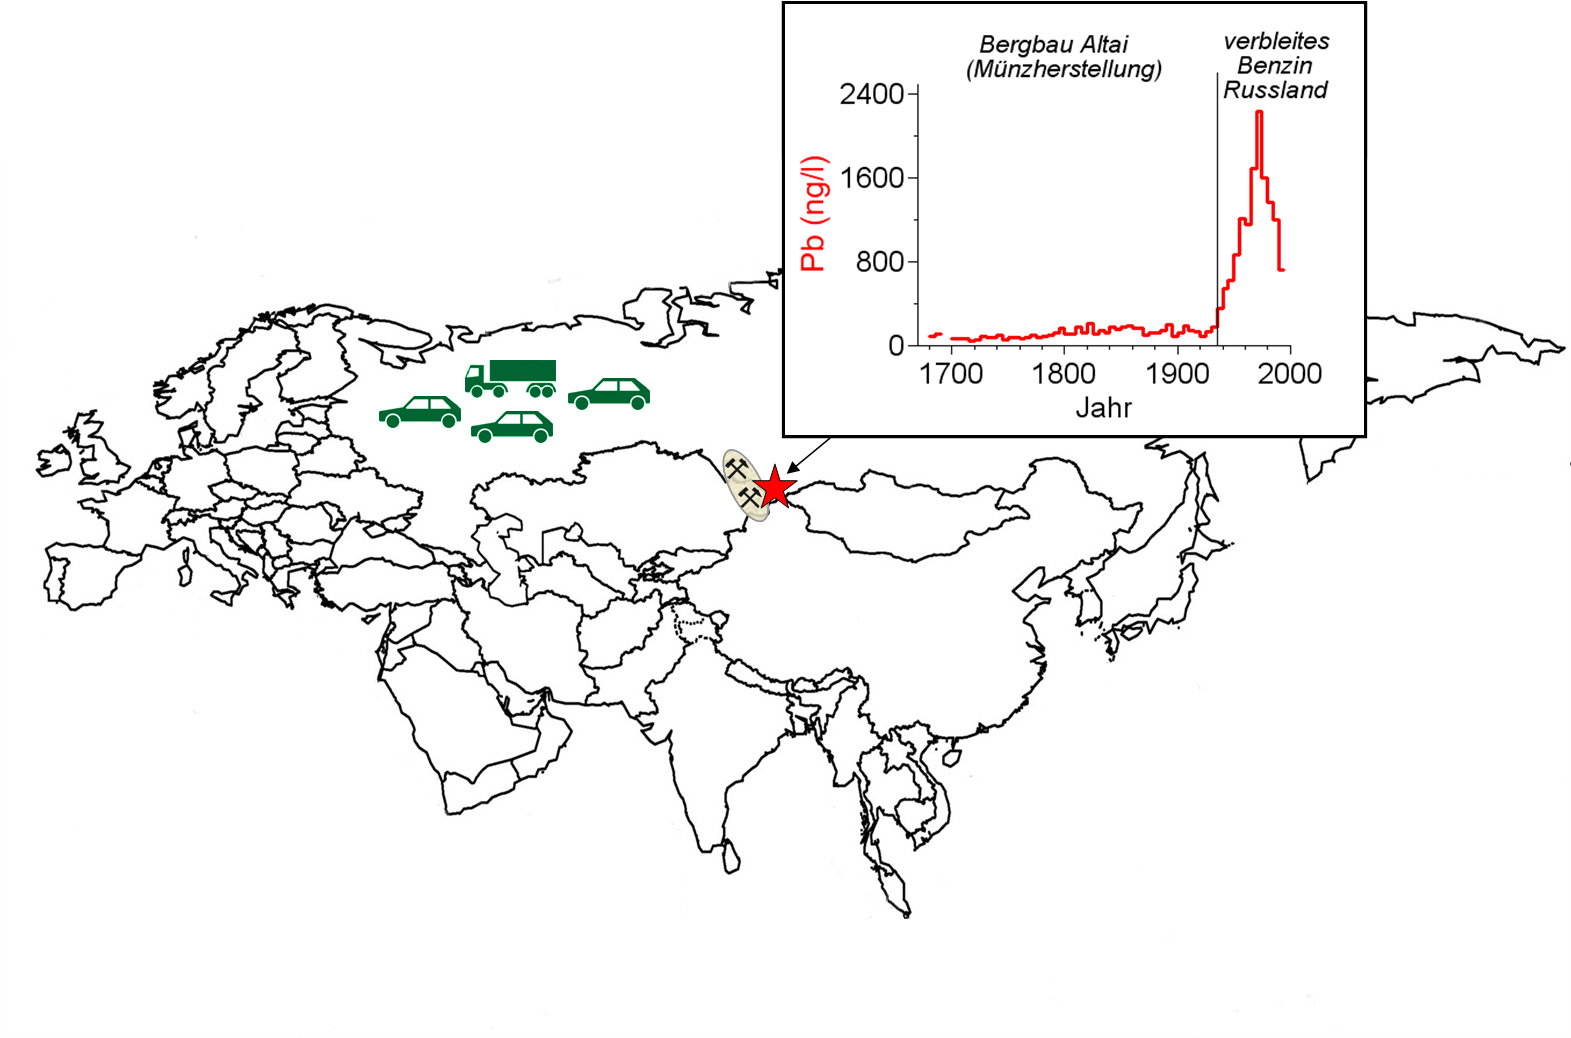 Atmospheric lead concentrations in the period 1680-1995